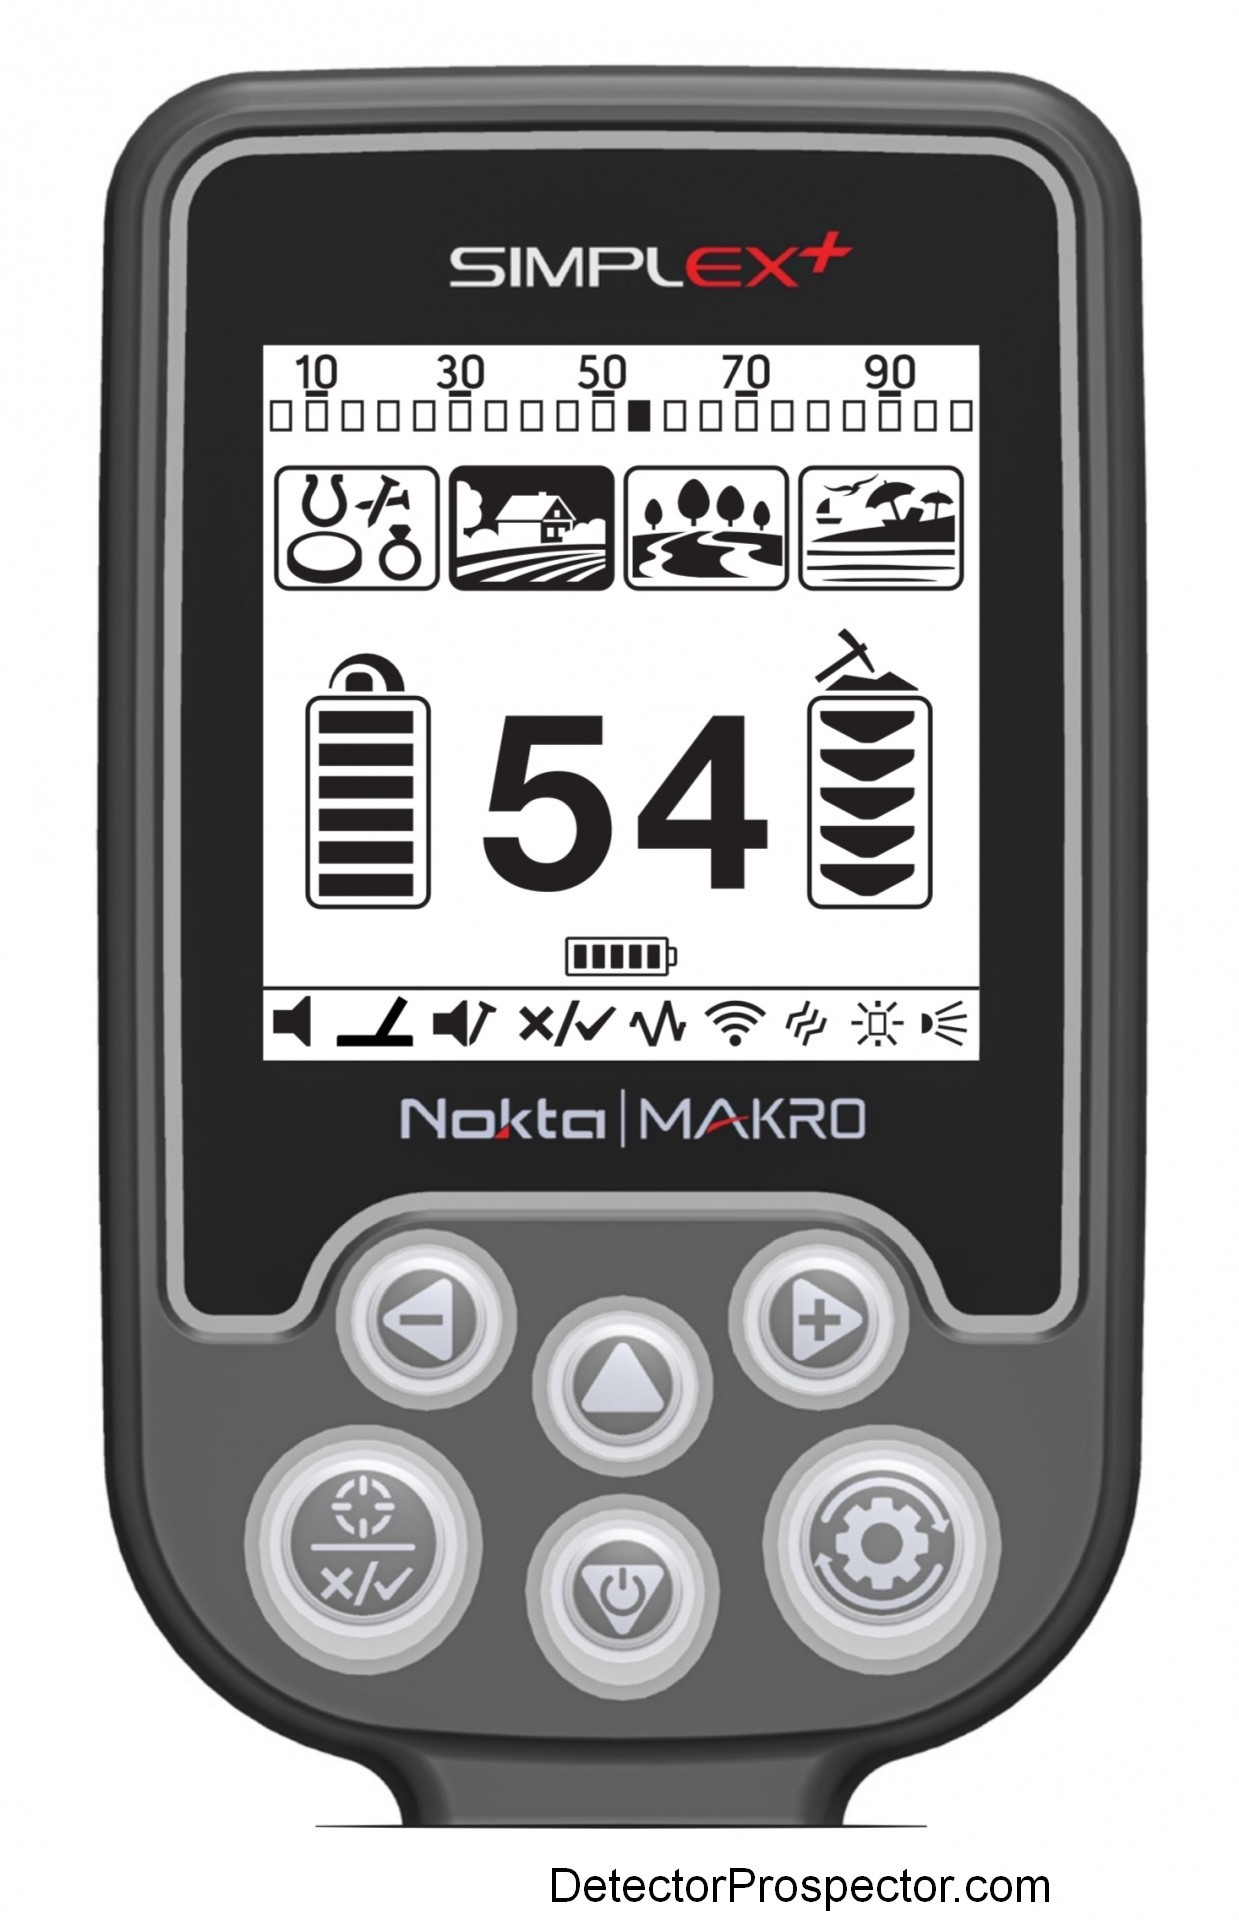 nokta-makro-simplex+-waterproof-wireless-metal-detector-lcd-display-controls.jpg